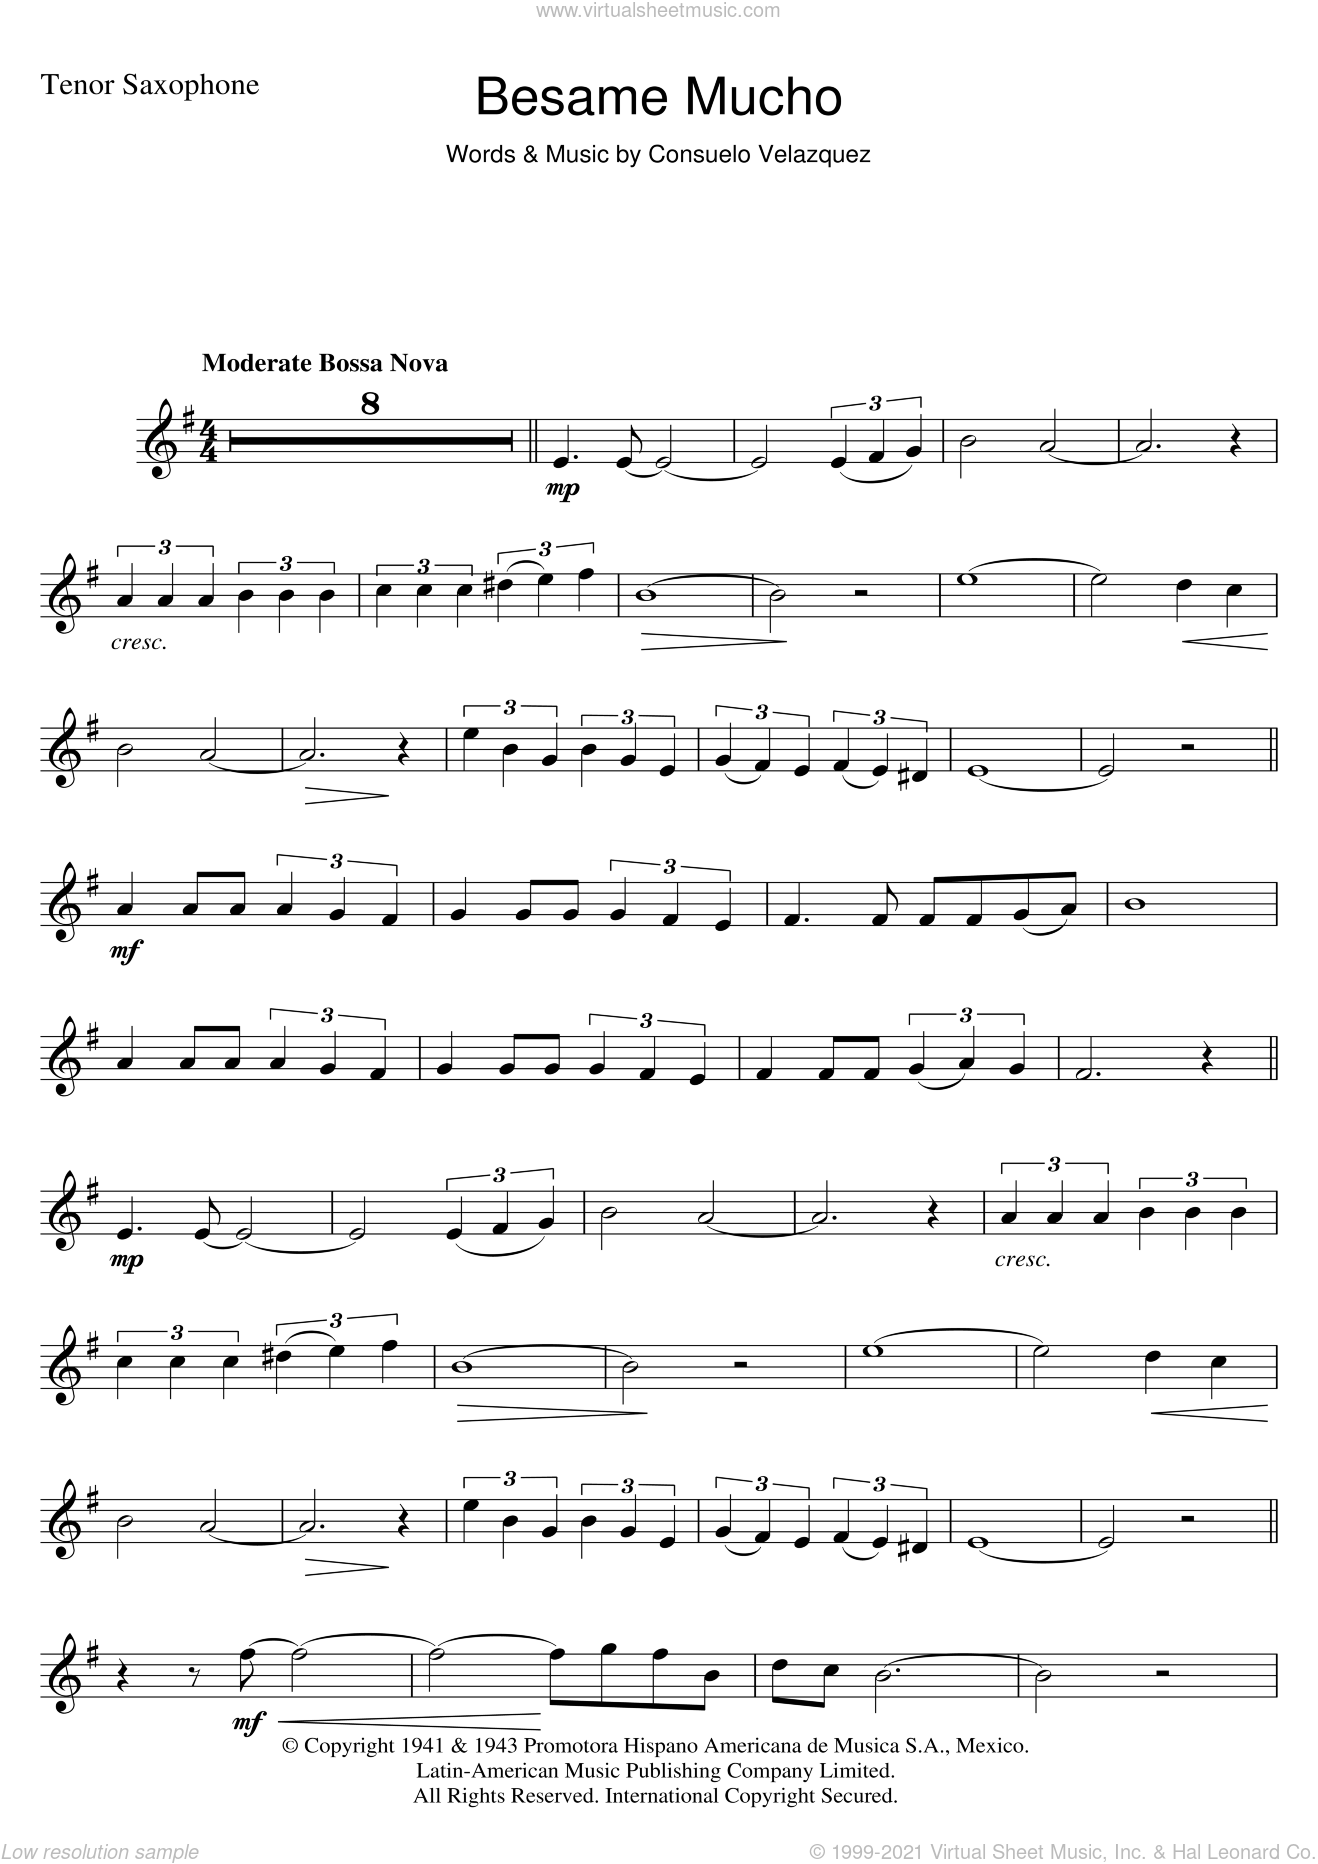 Besame Mucho (Kiss Me Much) sheet music for tenor saxophone solo by Consuelo Velazquez and Diana Krall, intermediate skill level